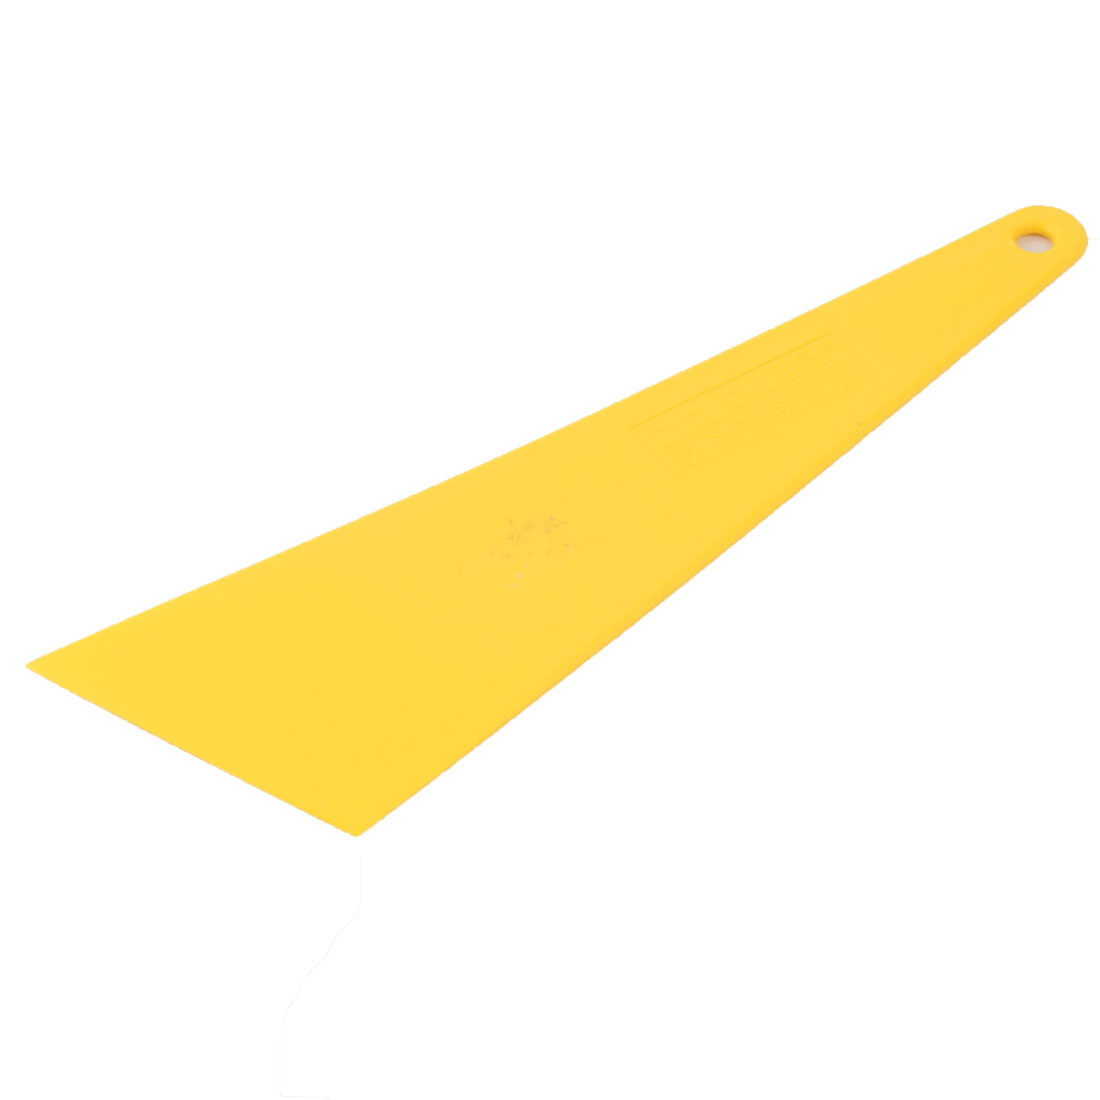 Car Window Film Wrap Tint Triangle Shape Cleaning Scraper Tinting Tool Yellow 28.5 x 8.4 x 0.5cm